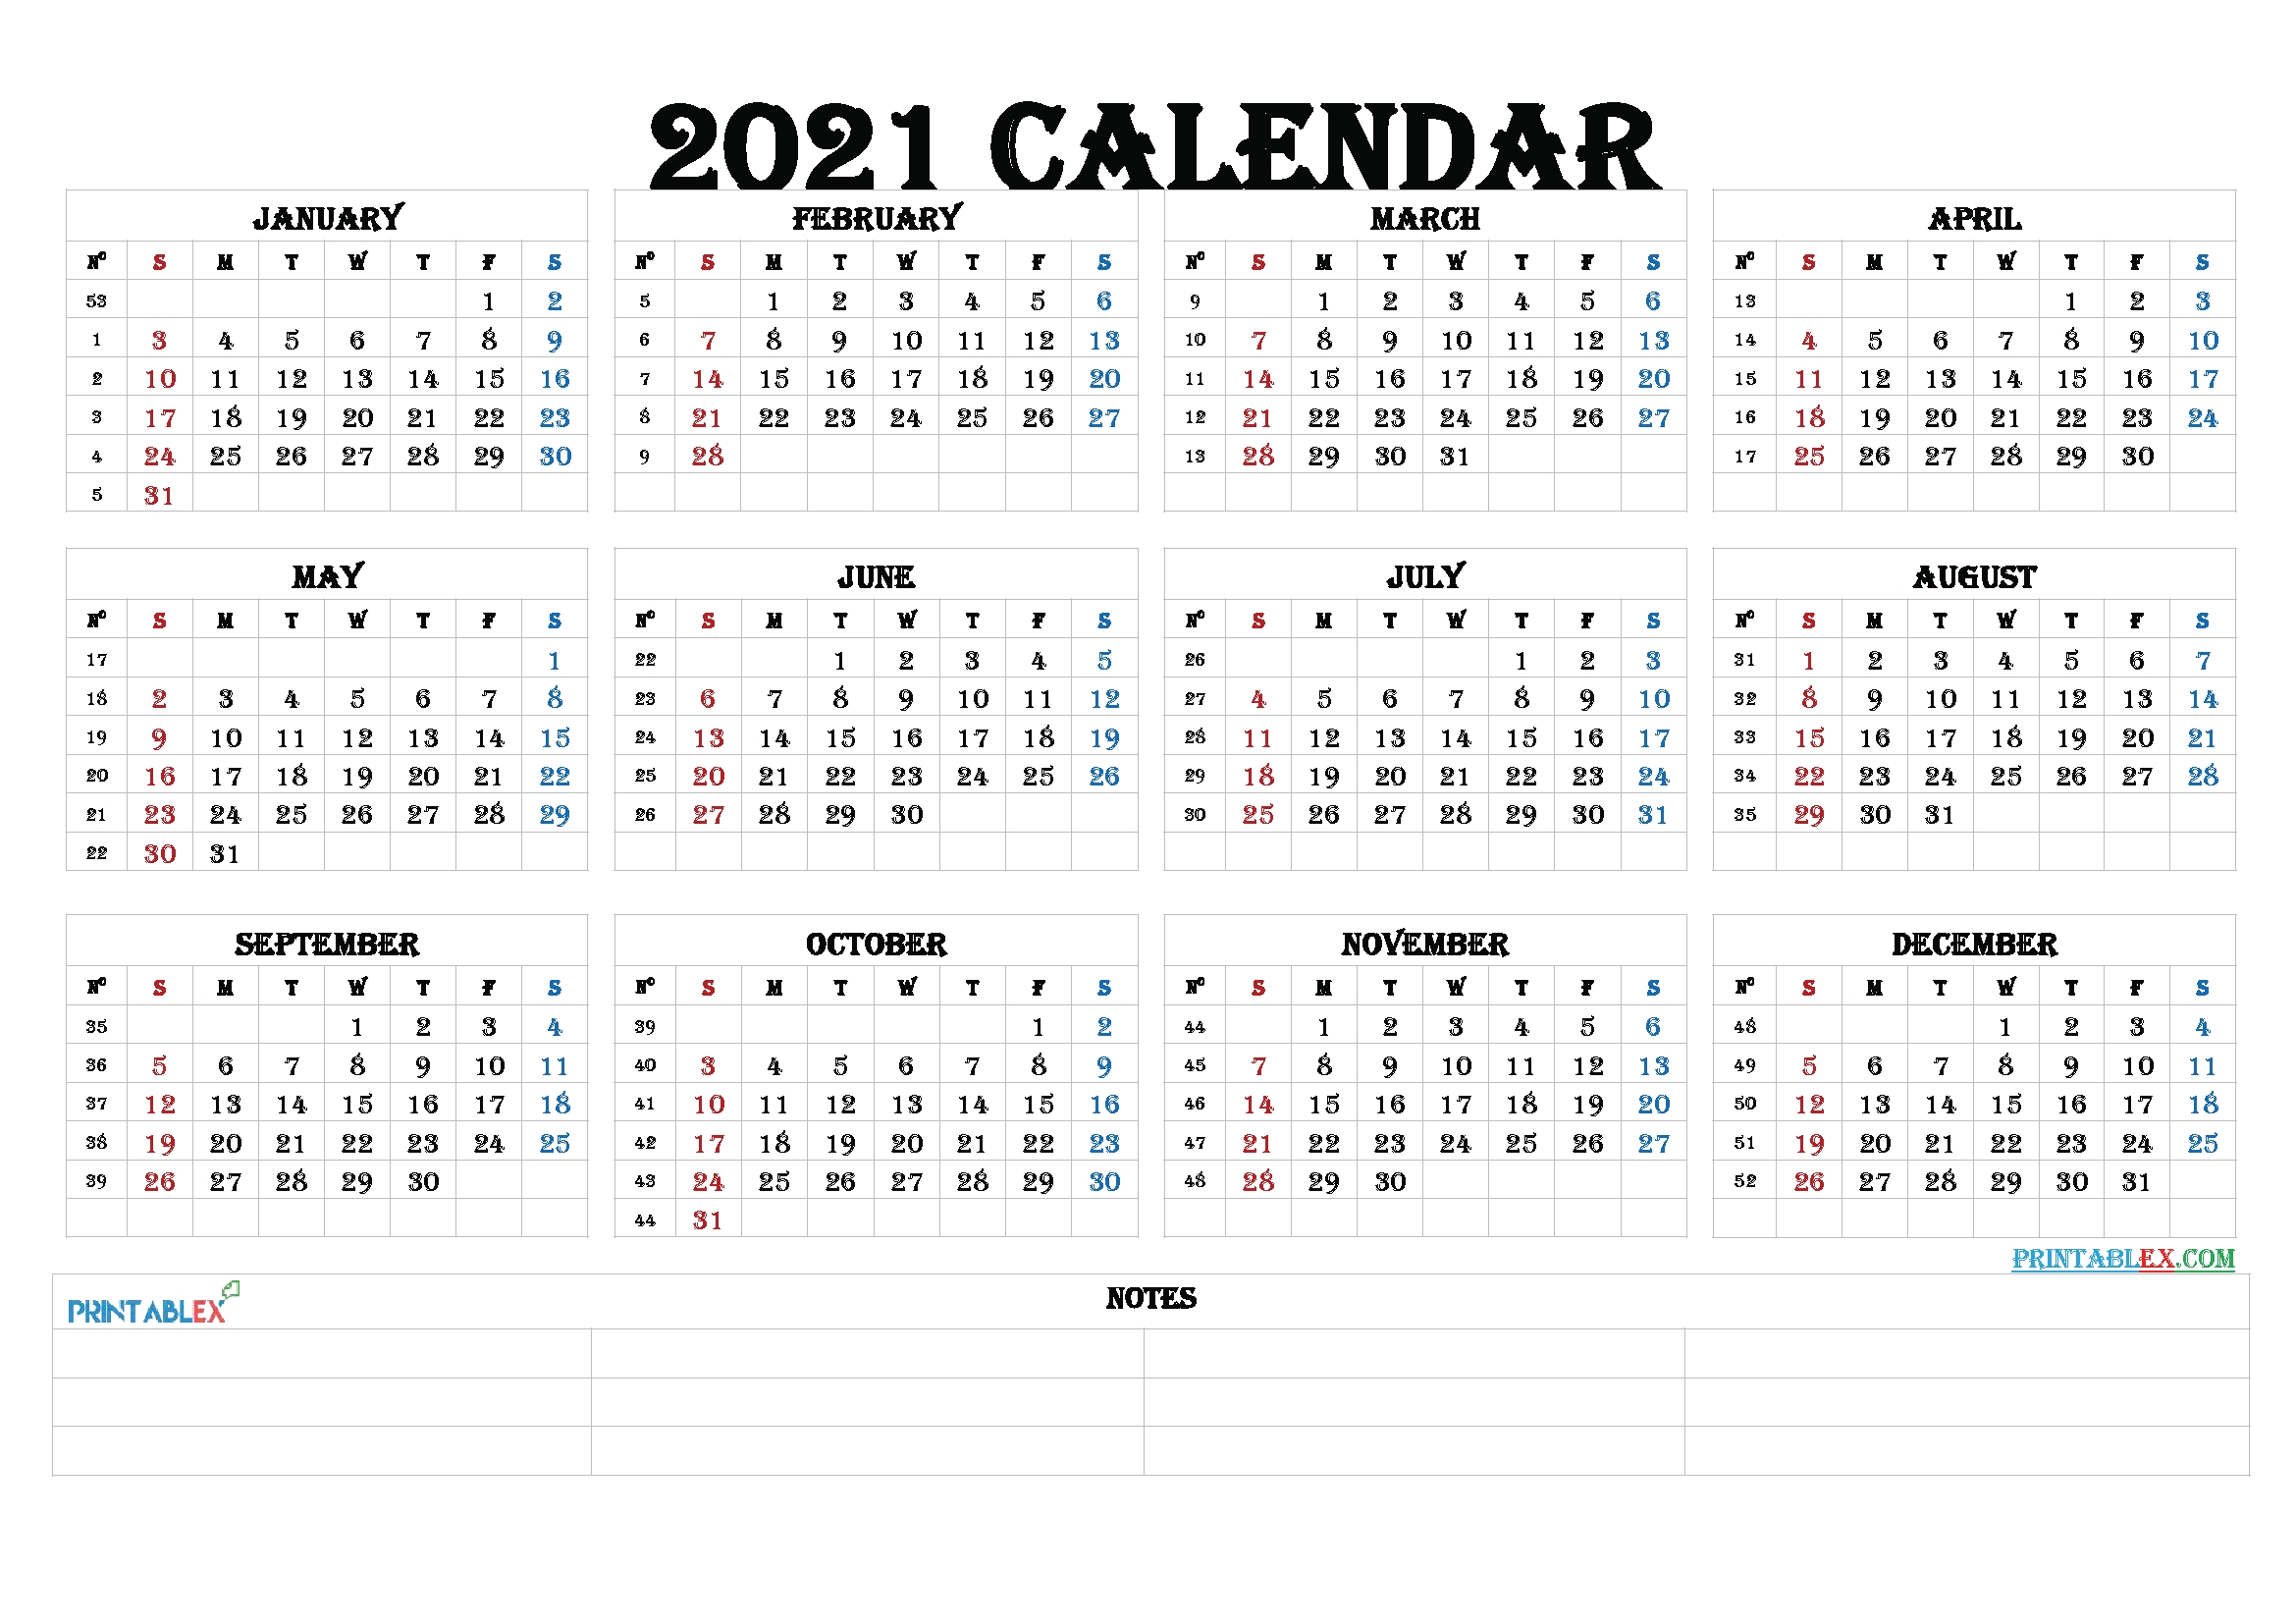 Pick 2021 Calendar By Week